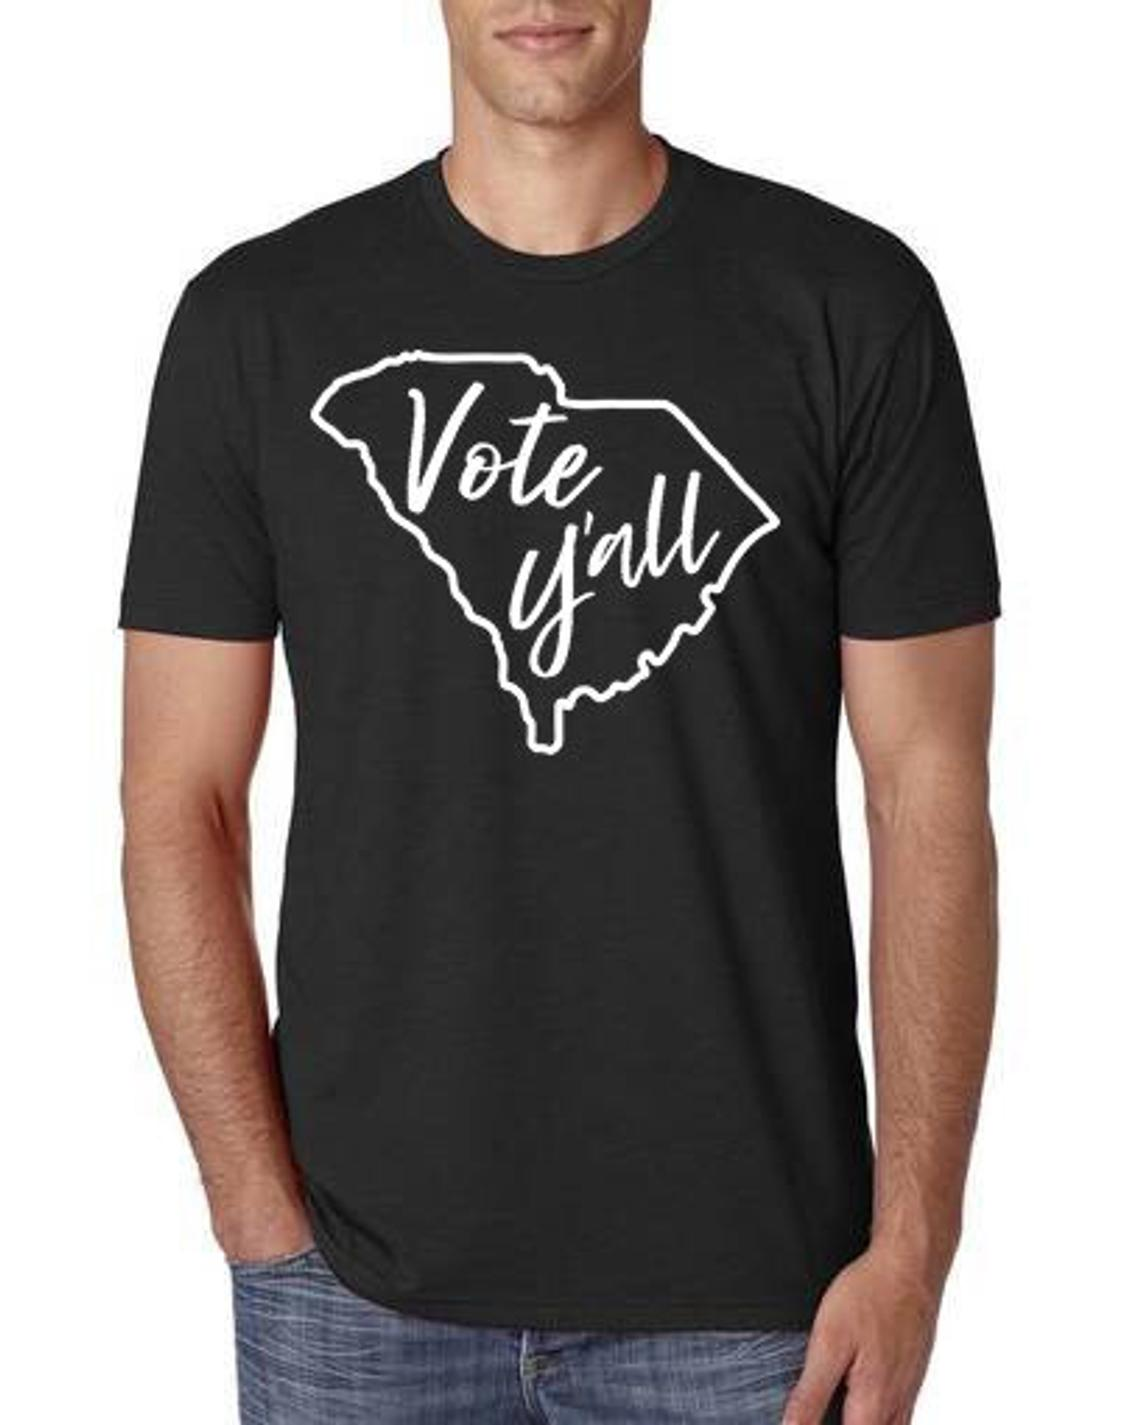 Vote Y'all T-shirts onsale to benefit the Vote Builder Project